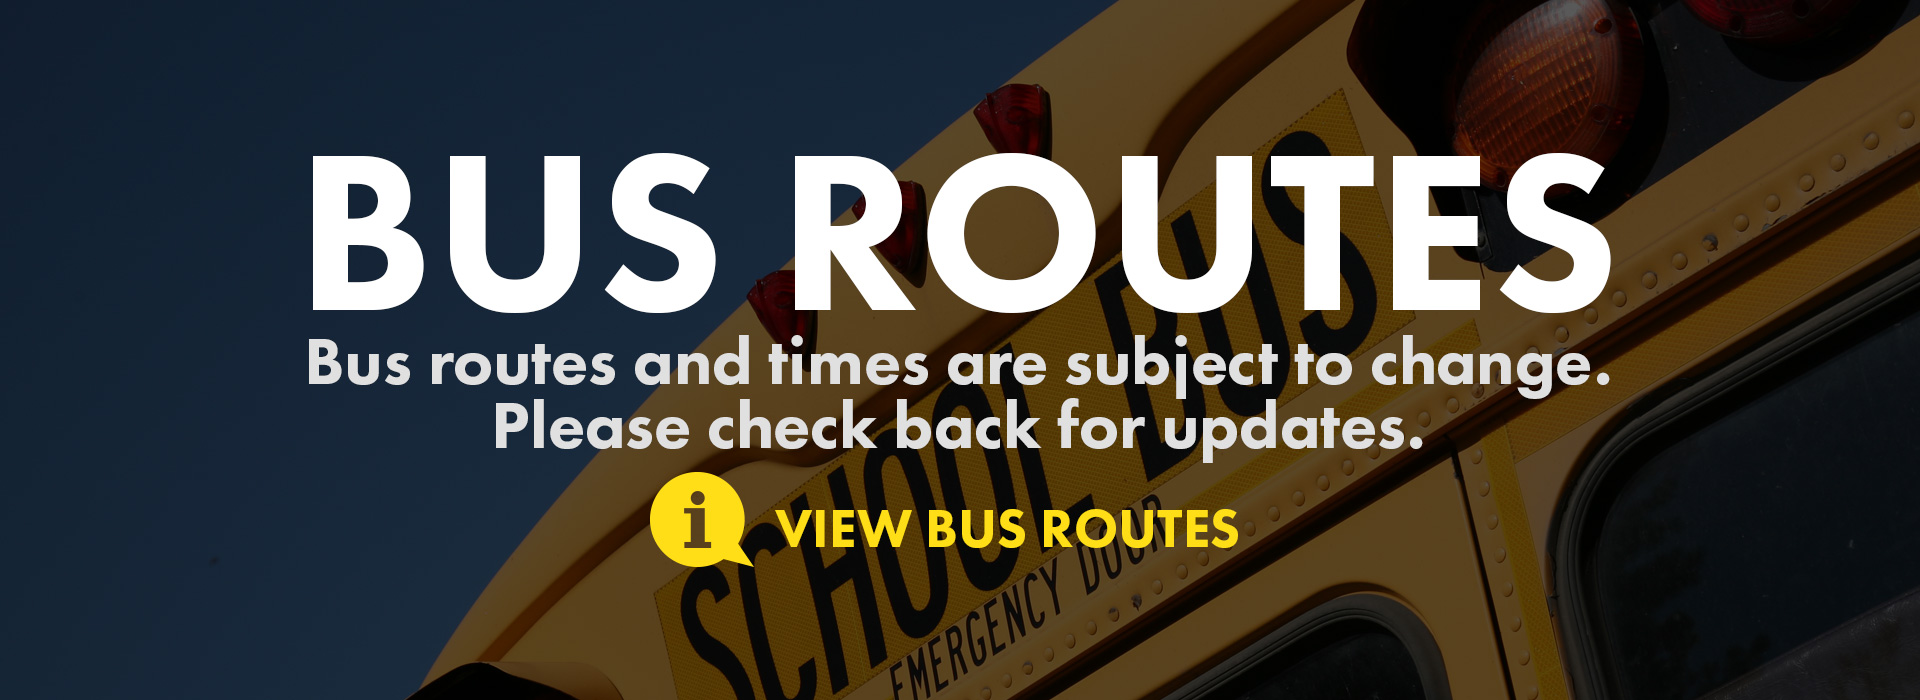 bus routes and times